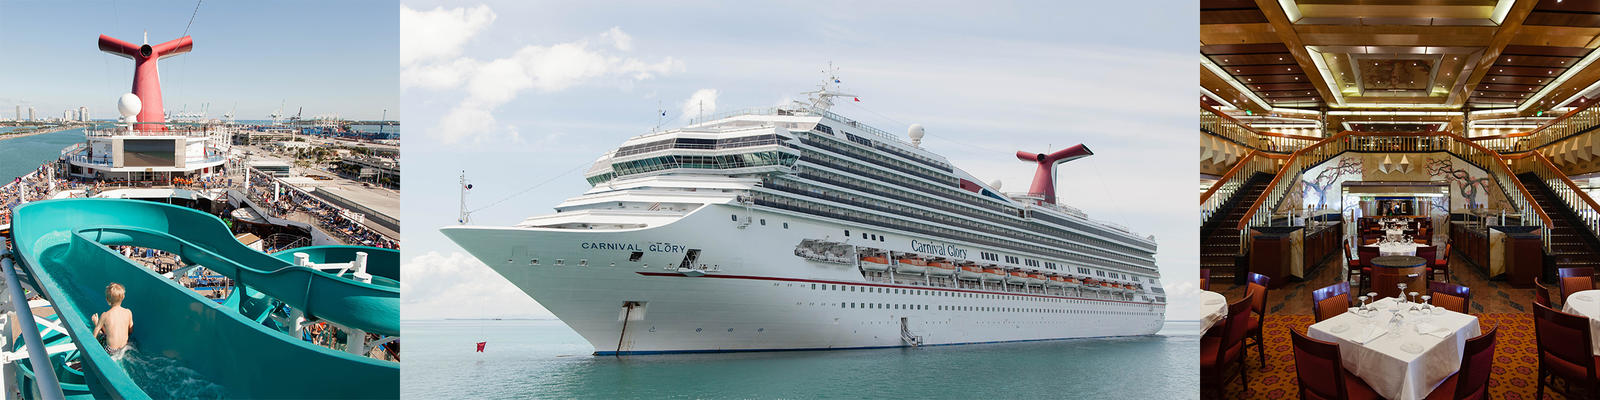 Carnival Glory Cruise Ship Review Photos Departure Ports On Critic